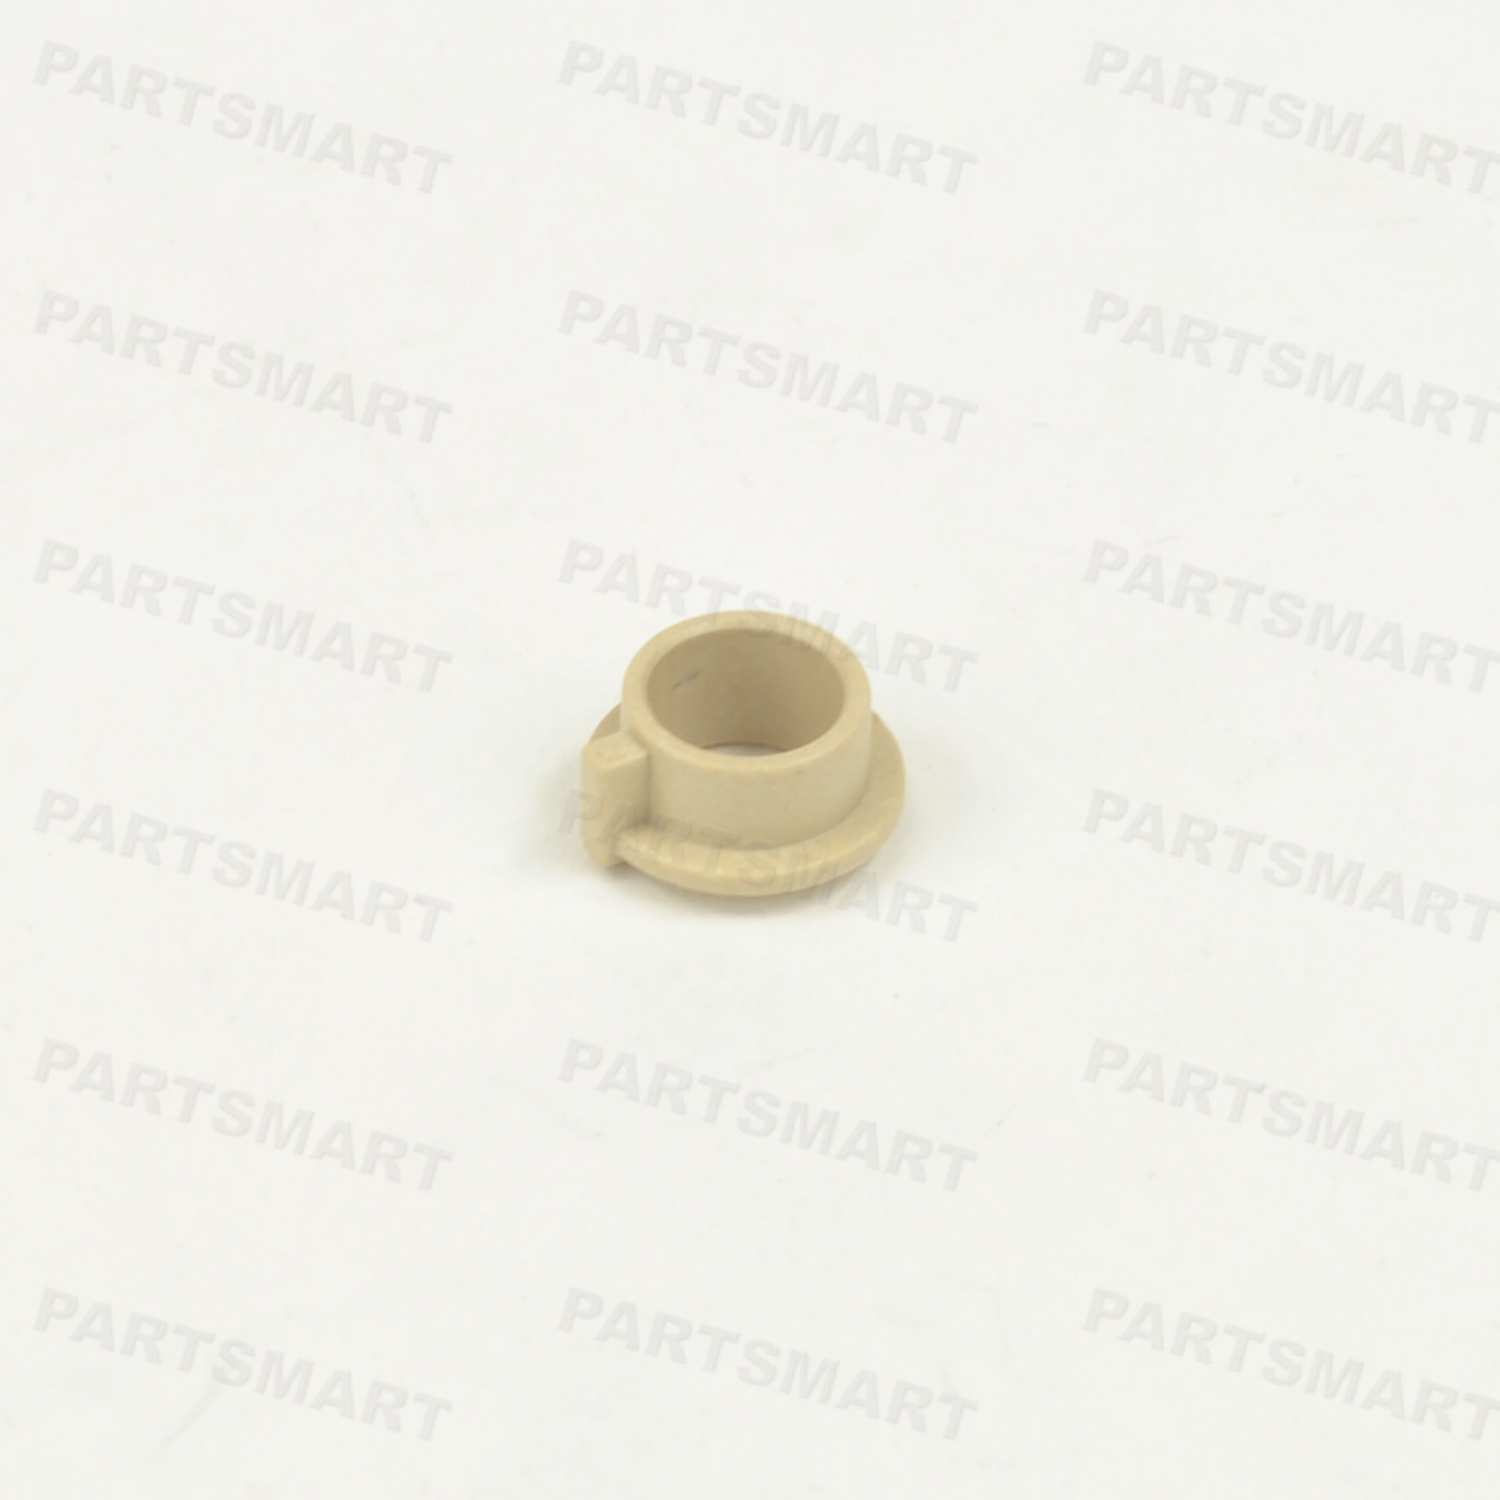 BSH-2400-PRNEW Bushing, Pressure Roller, Right for HP LaserJet 2400